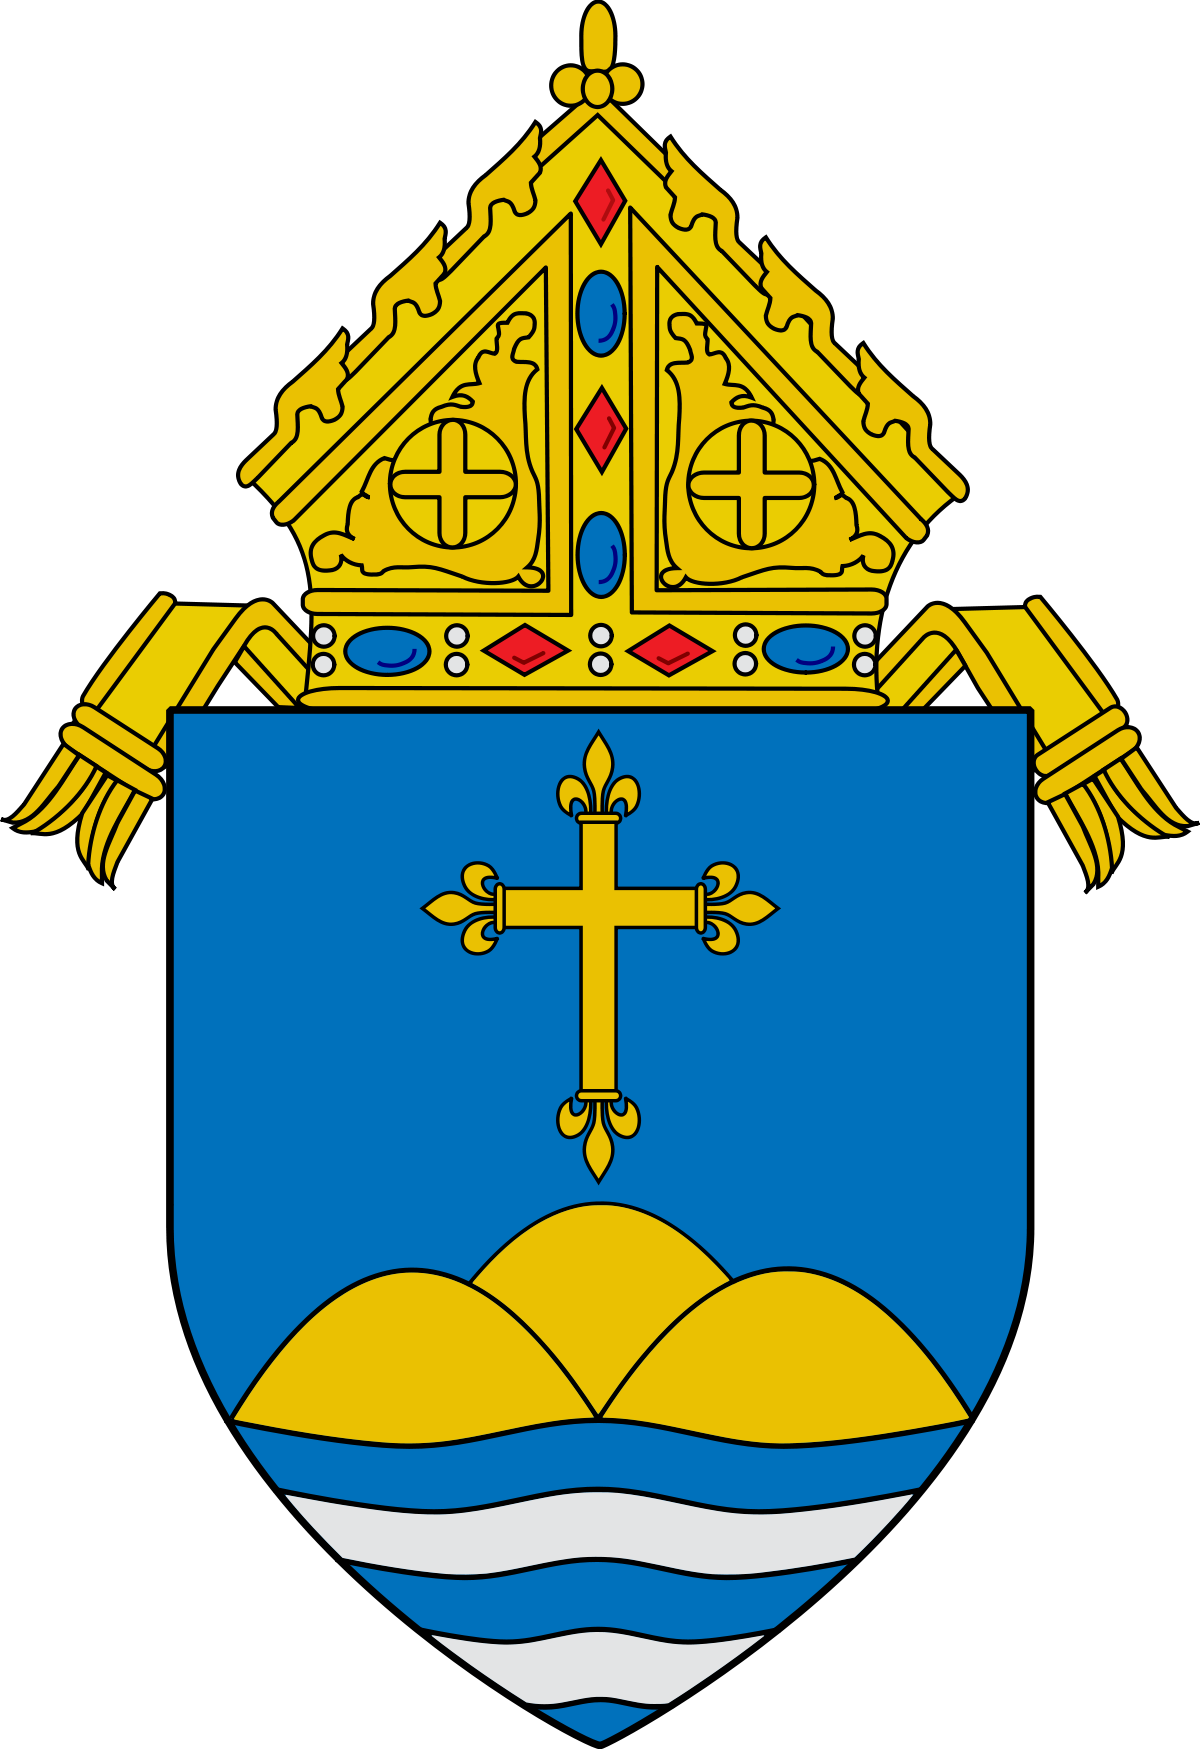 Crest of the Roman Catholic Archdiocese of Boston.